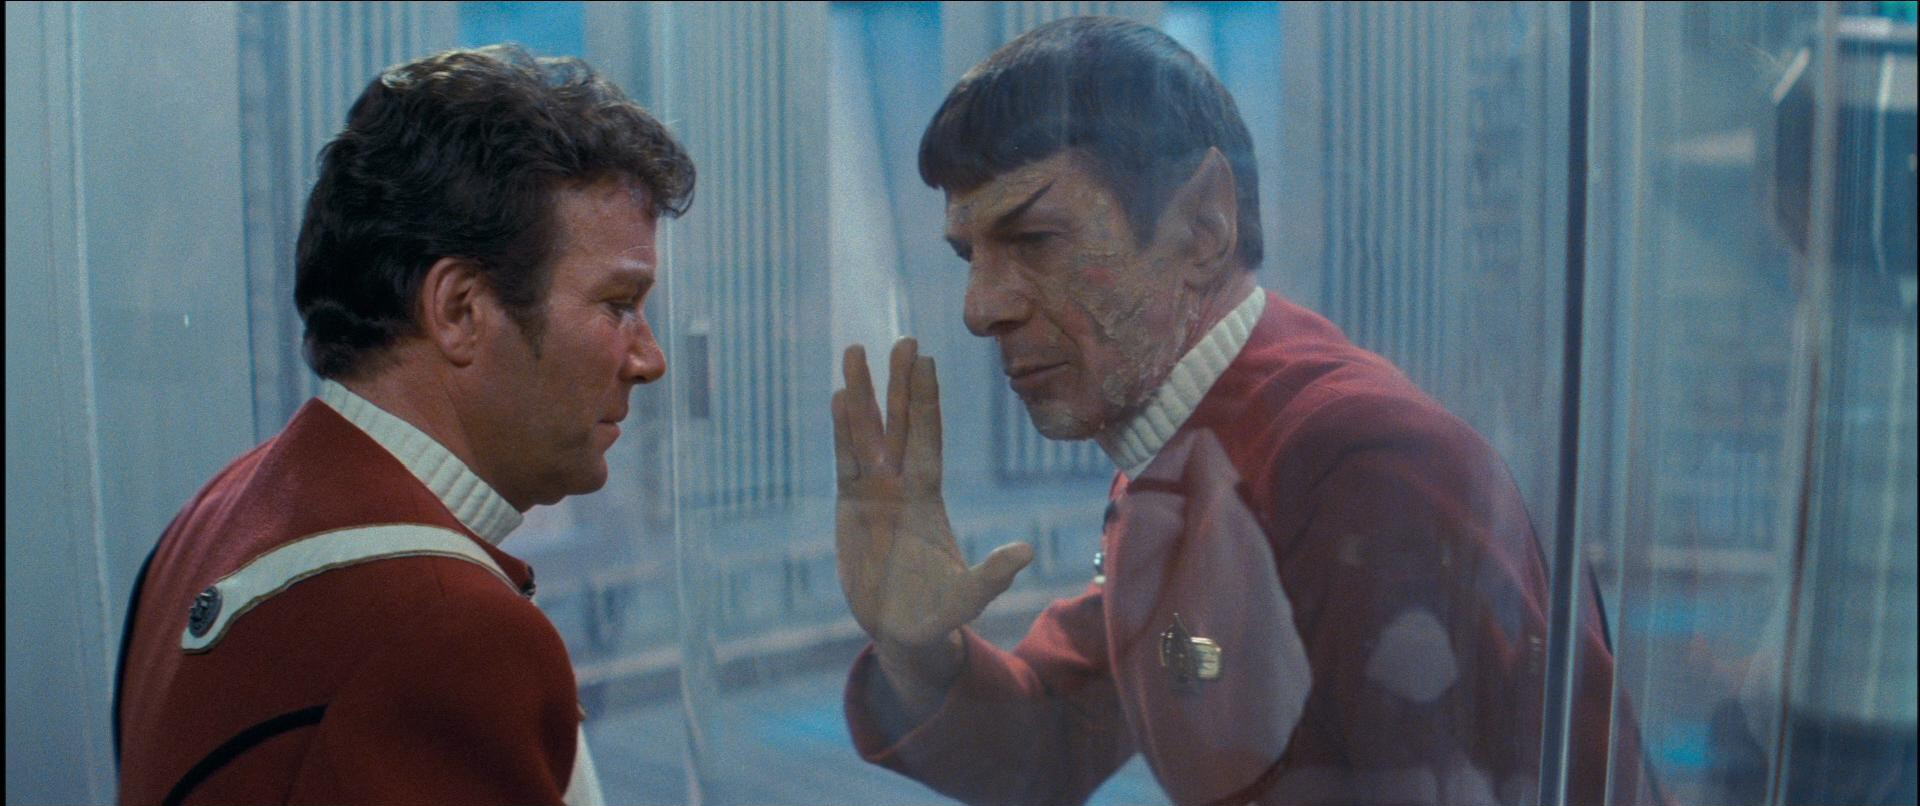 Leonard Nimoy, William Shatner ve filmu Star Trek II: Khanův hněv / Star Trek: The Wrath of Khan